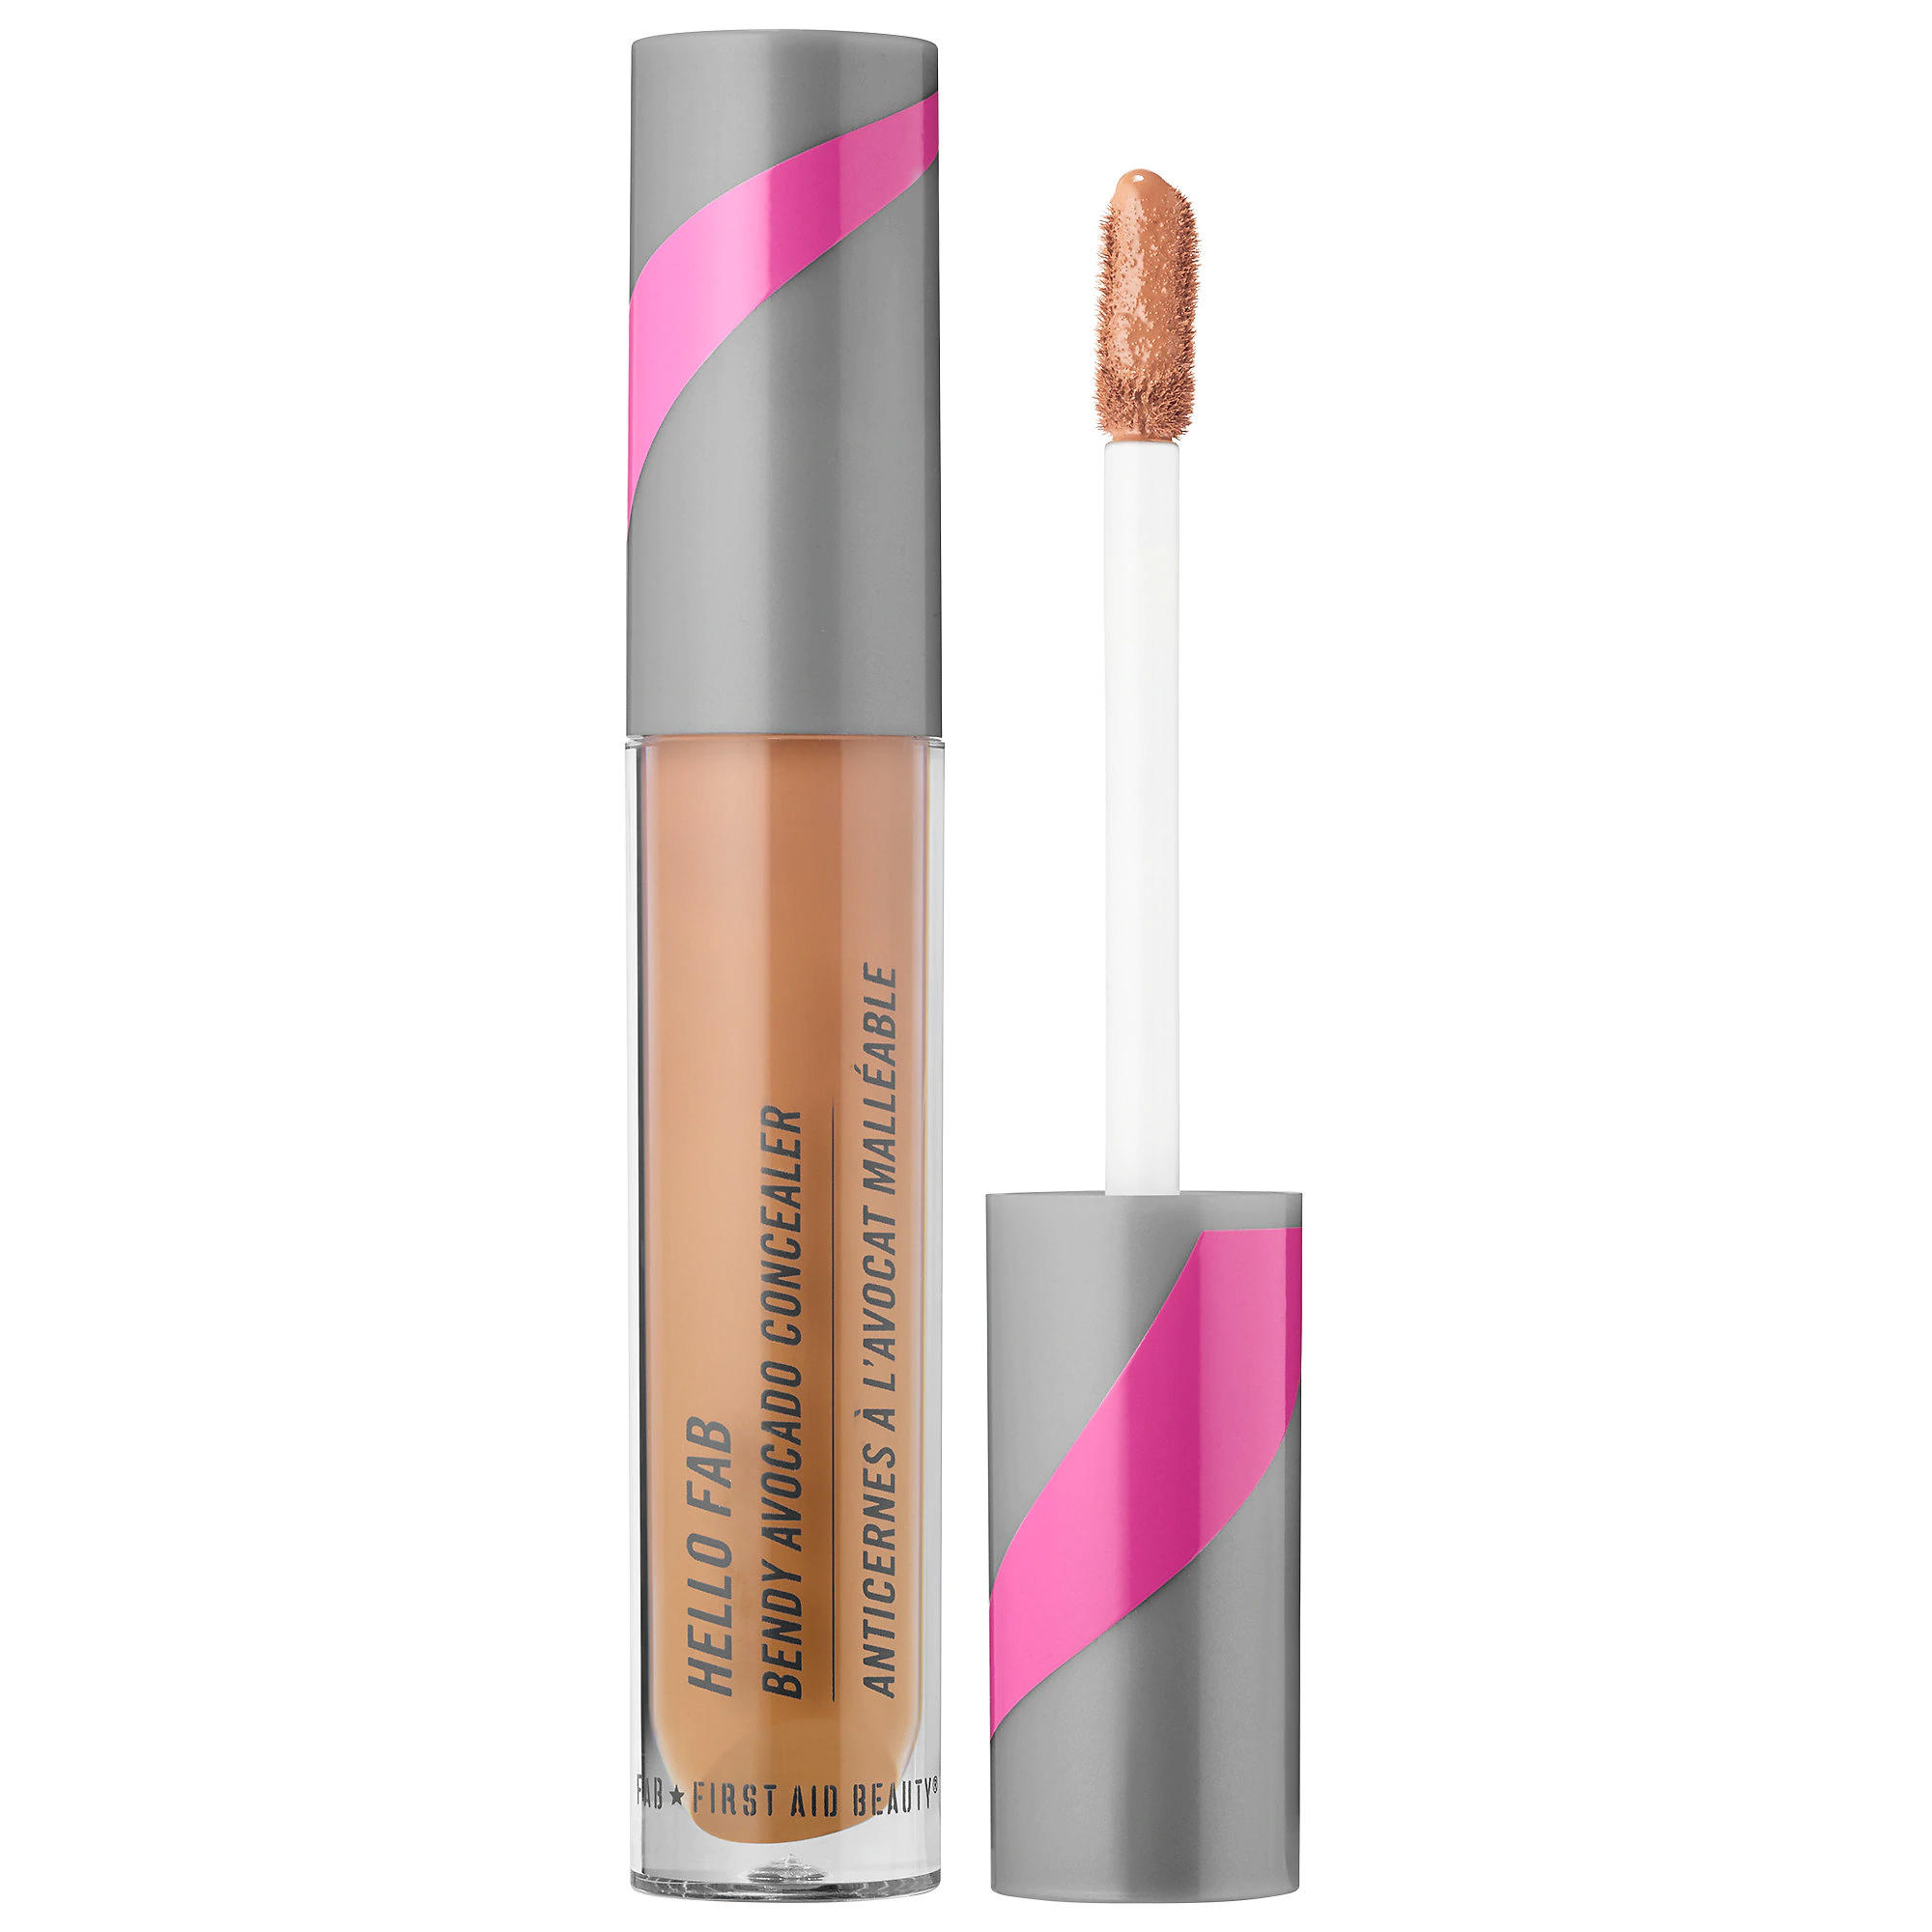 First Aid Beauty Hello FAB Bendy Avocado Concealer 6